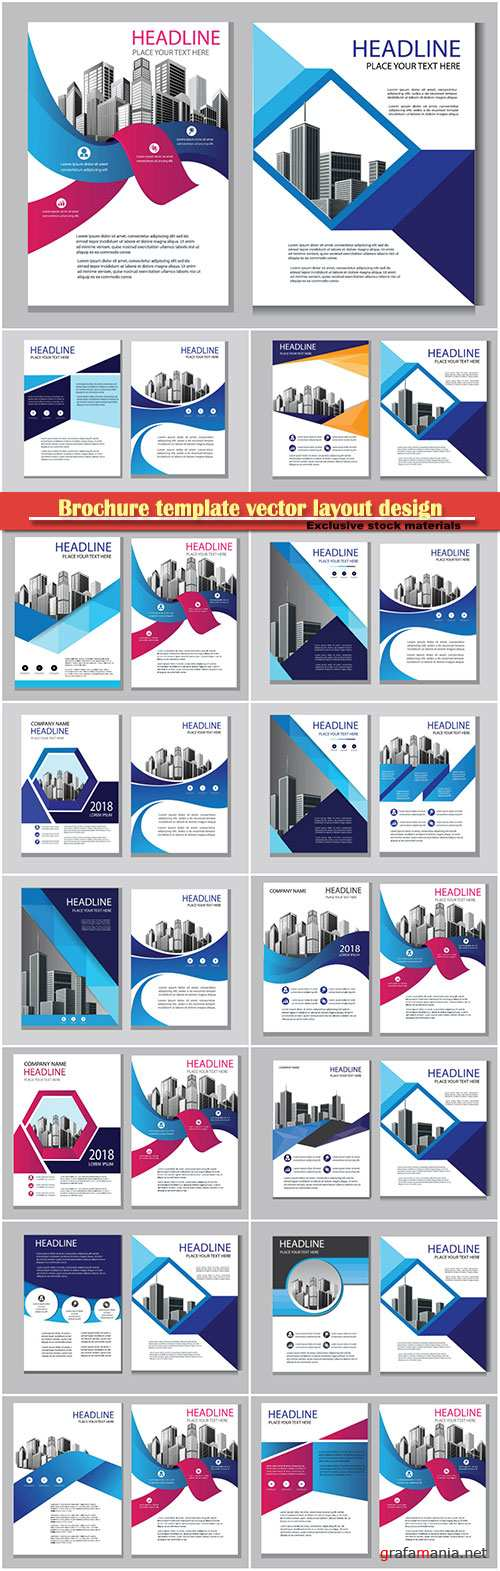 Brochure template vector layout design, corporate business annual report, magazine, flyer mockup # 129